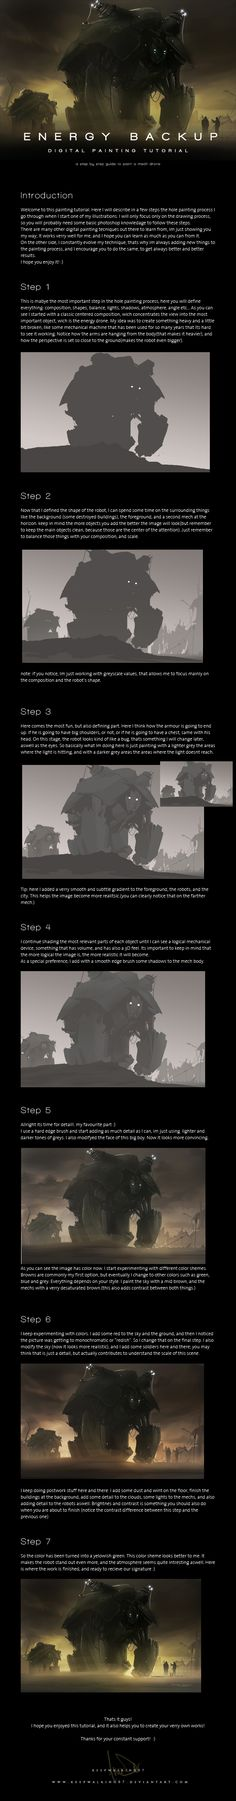 Sci Fi Painting Tutorial by keepwalking07.deviantart.com on @deviantART